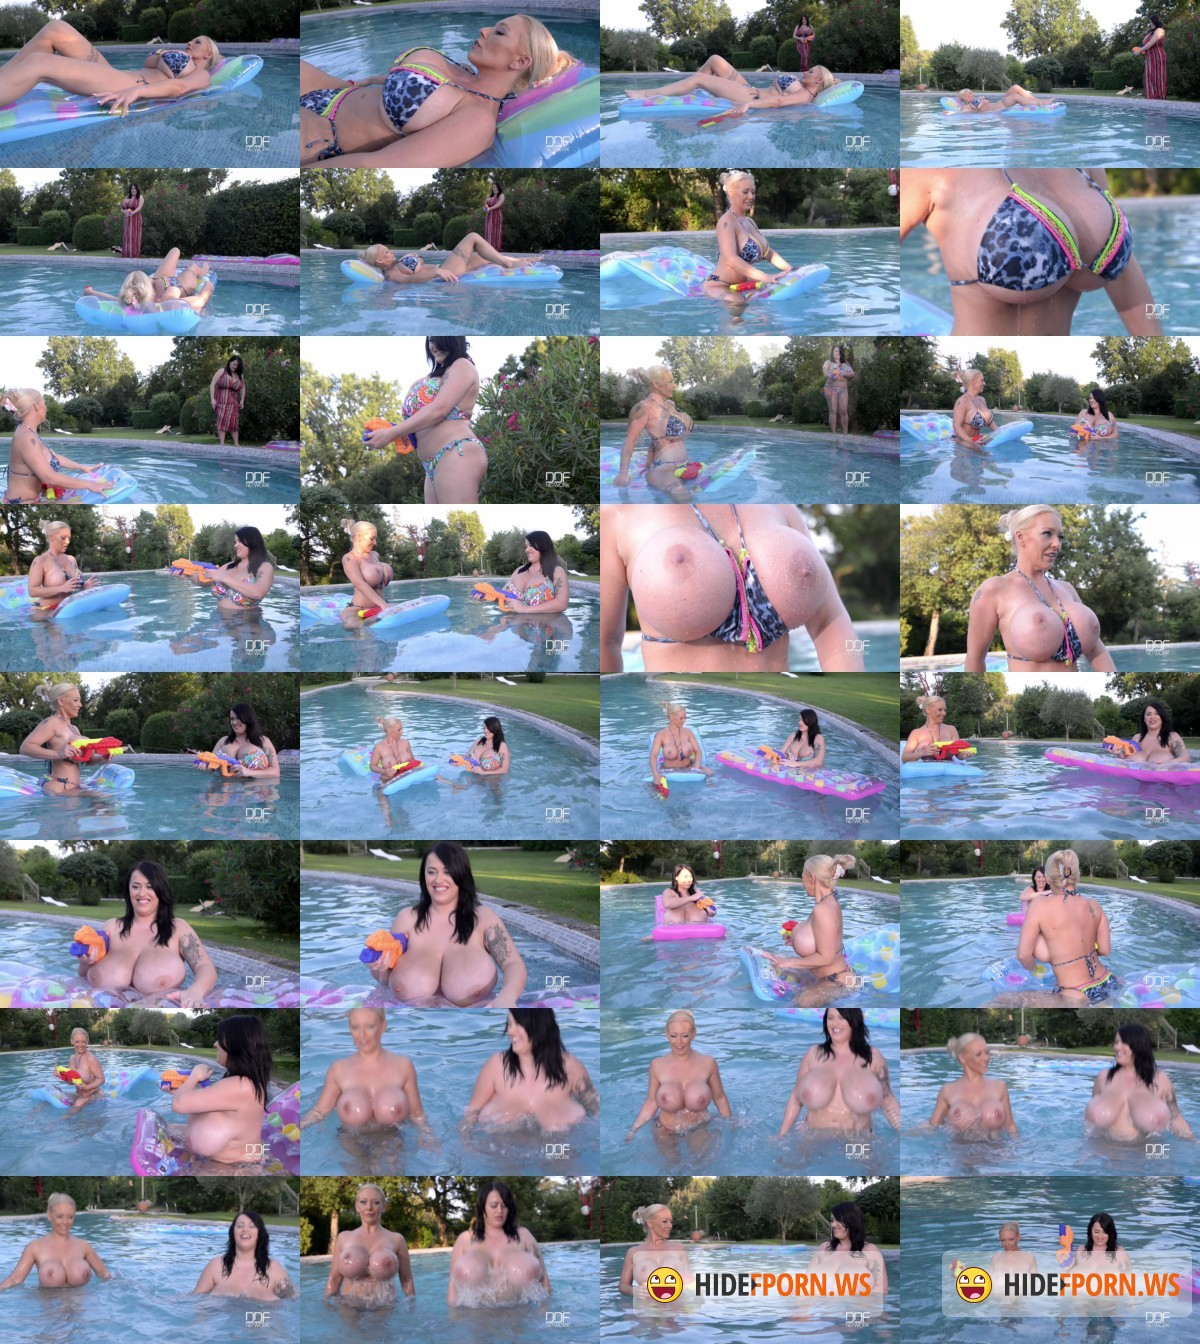 Delzangel, Leanne Crow - Floating Gazongas: Two British Bombshells With Big Tits In The Pool [HD]